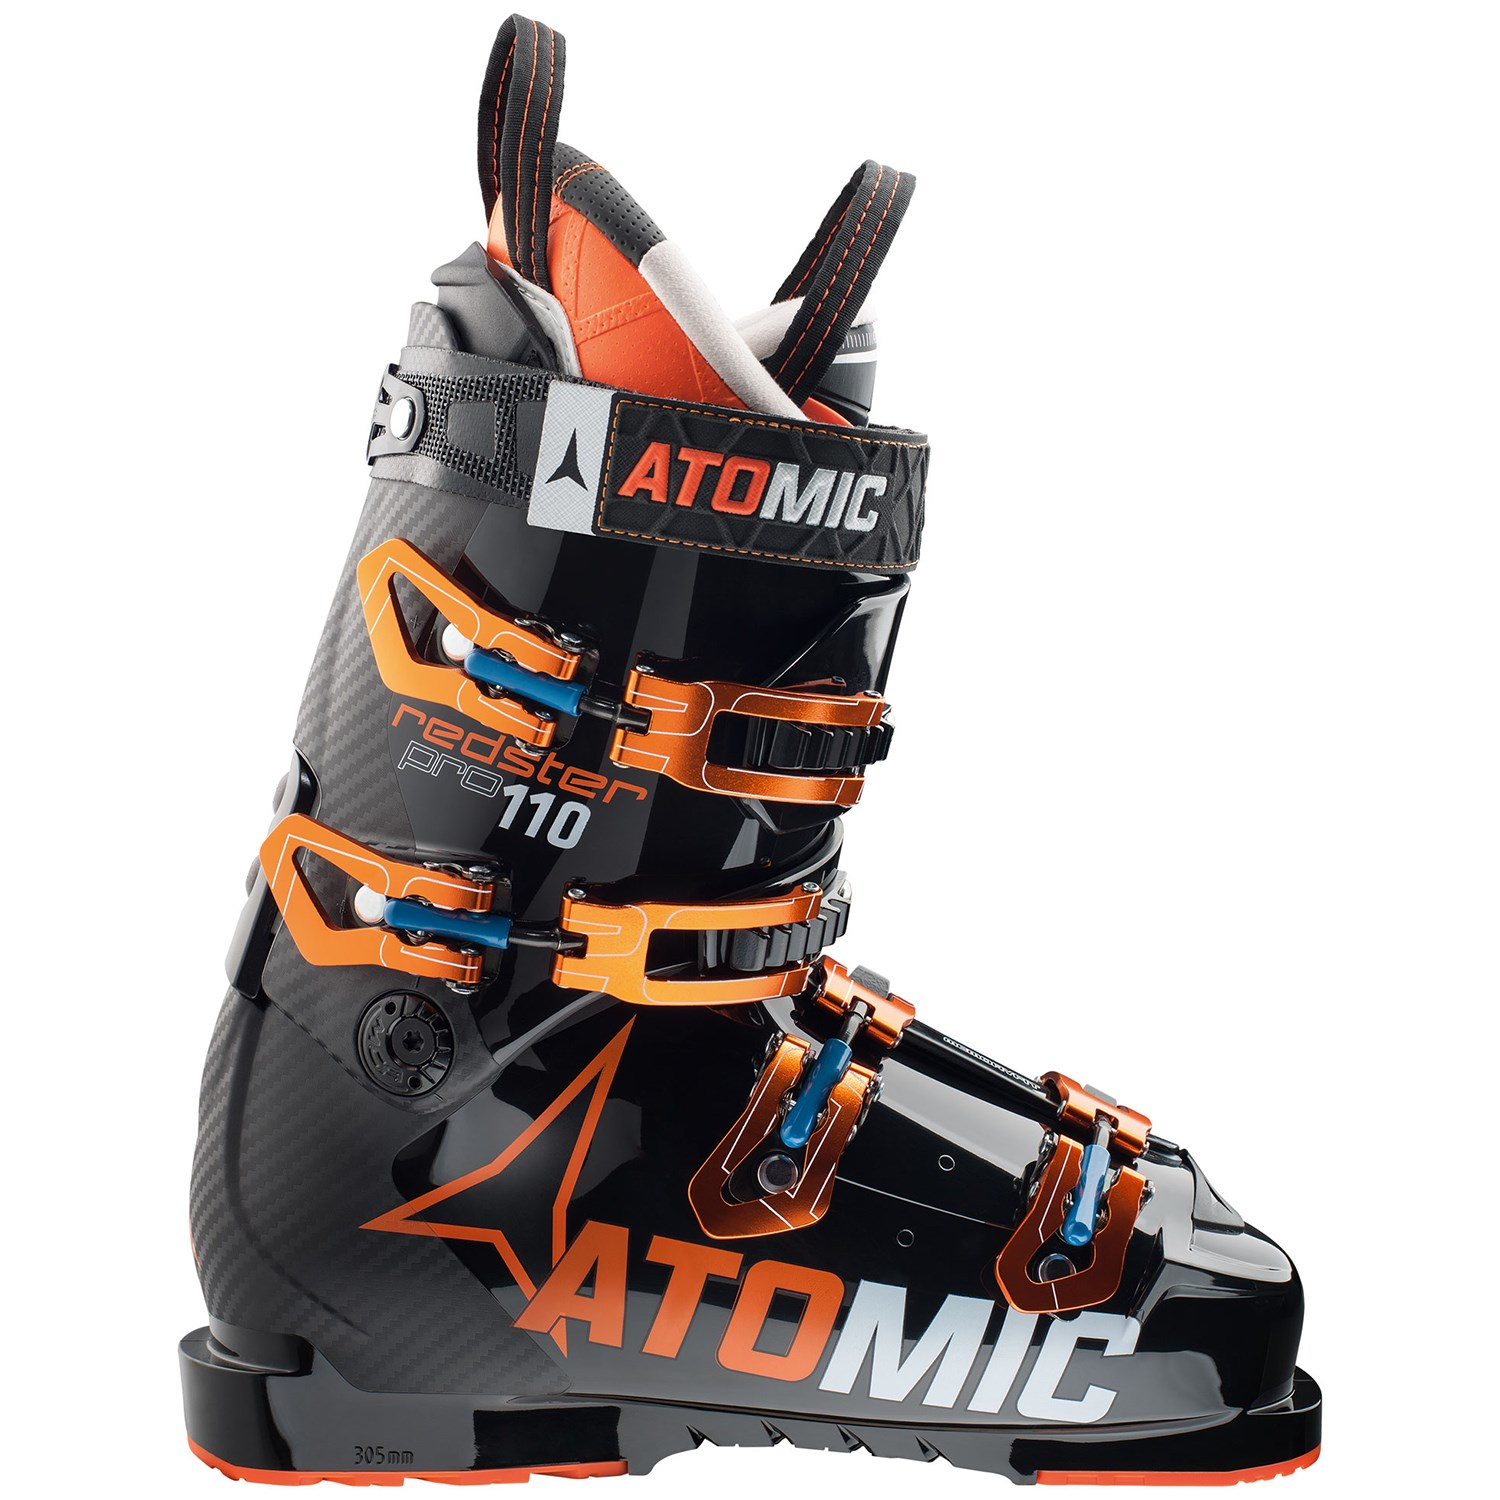 Atomic Vantage 97Ti - 2019 Ski Review - YouTube